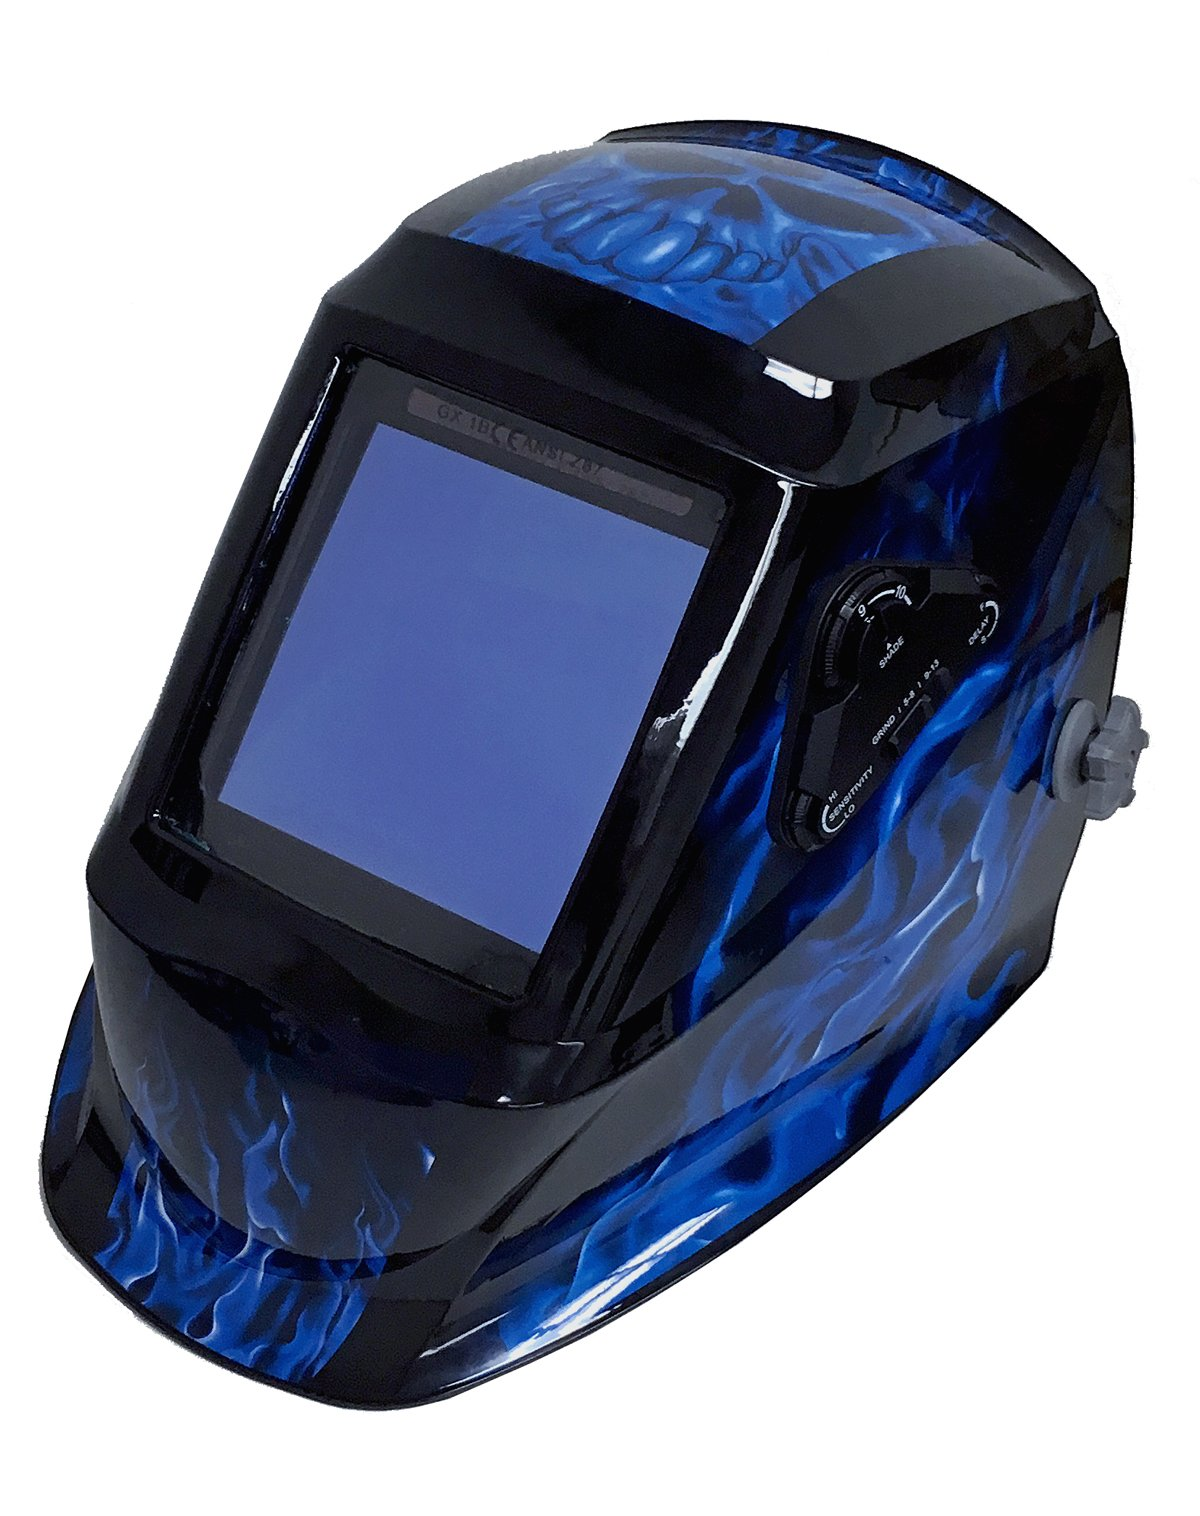 Instapark ADF Series GX990T Solar Powered Auto Darkening Welding Helmet with 4 Optical Sensors, 3.94'' X 3.86'' Viewing Area and Adjustable Shade Range #5 - #13 Bluish Devil by Instapark (Image #1)